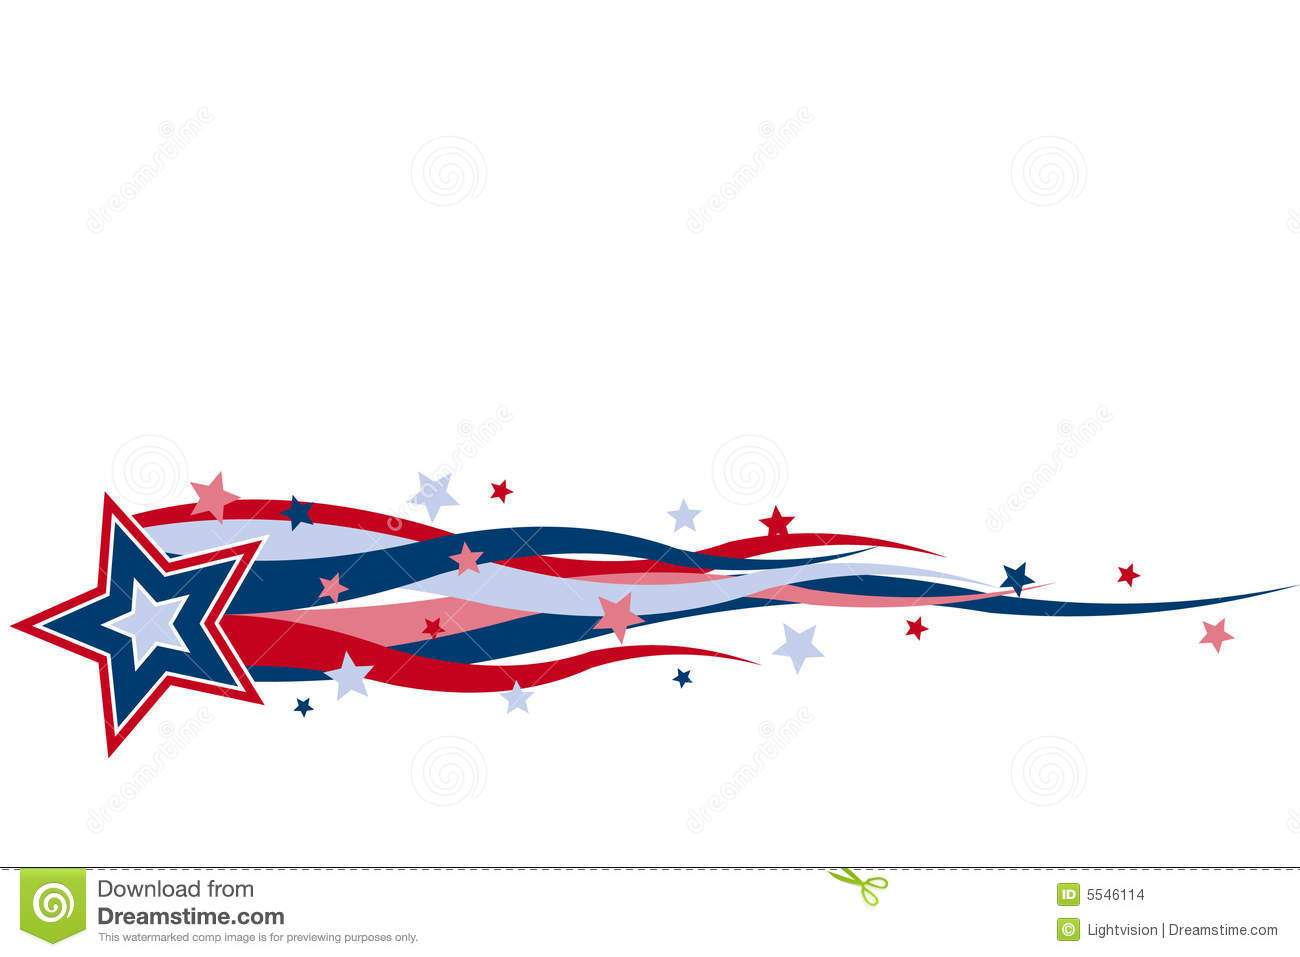 Red white blue banner clipart 3 » Clipart Portal.